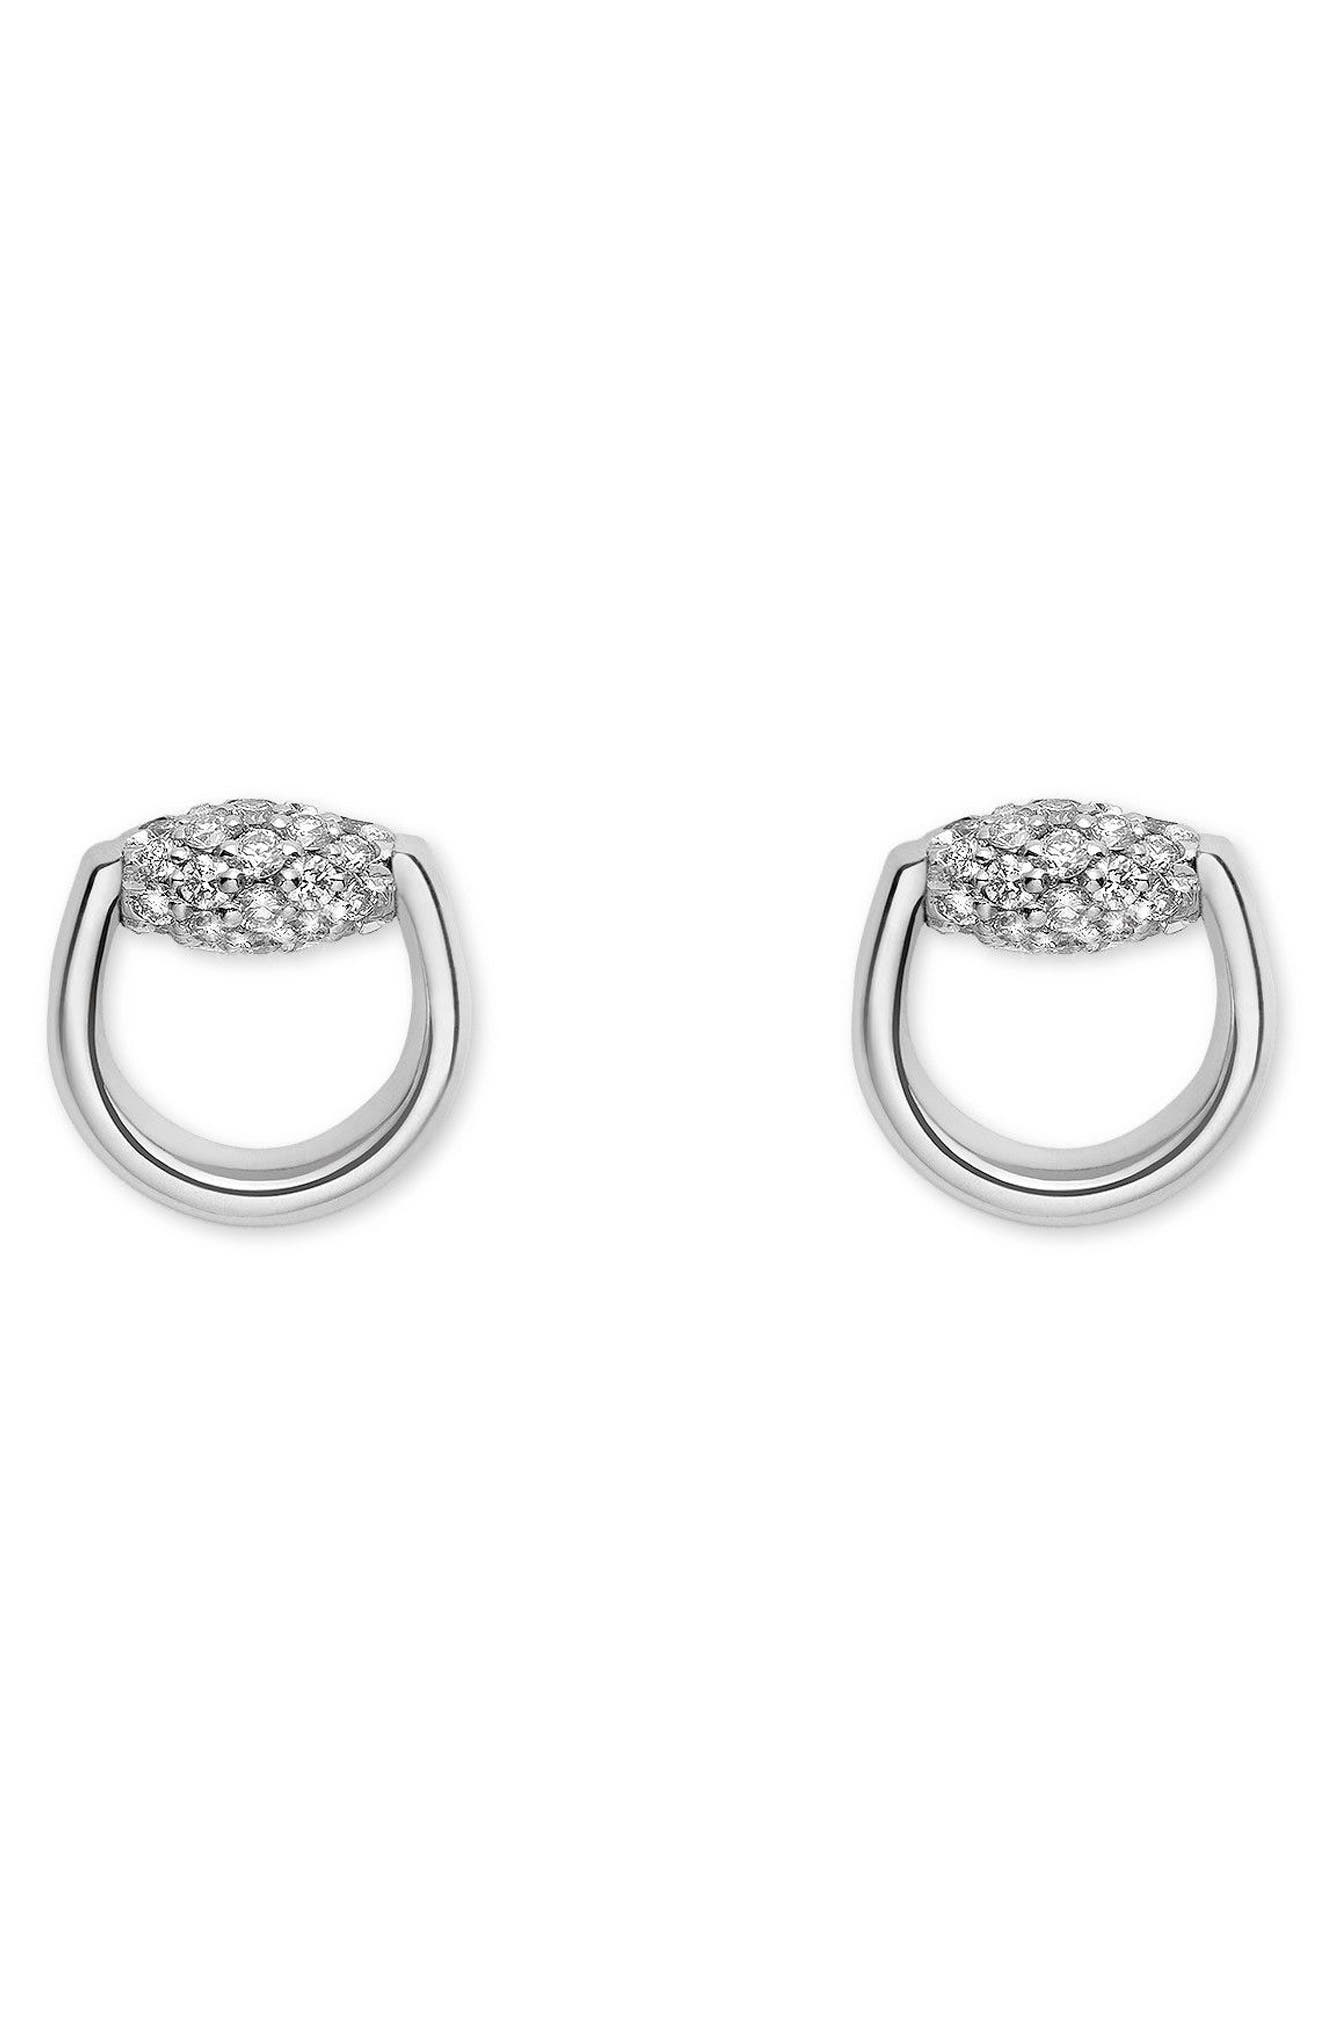 Horsebit Diamond Stud Earrings,                             Main thumbnail 1, color,                             White Gold